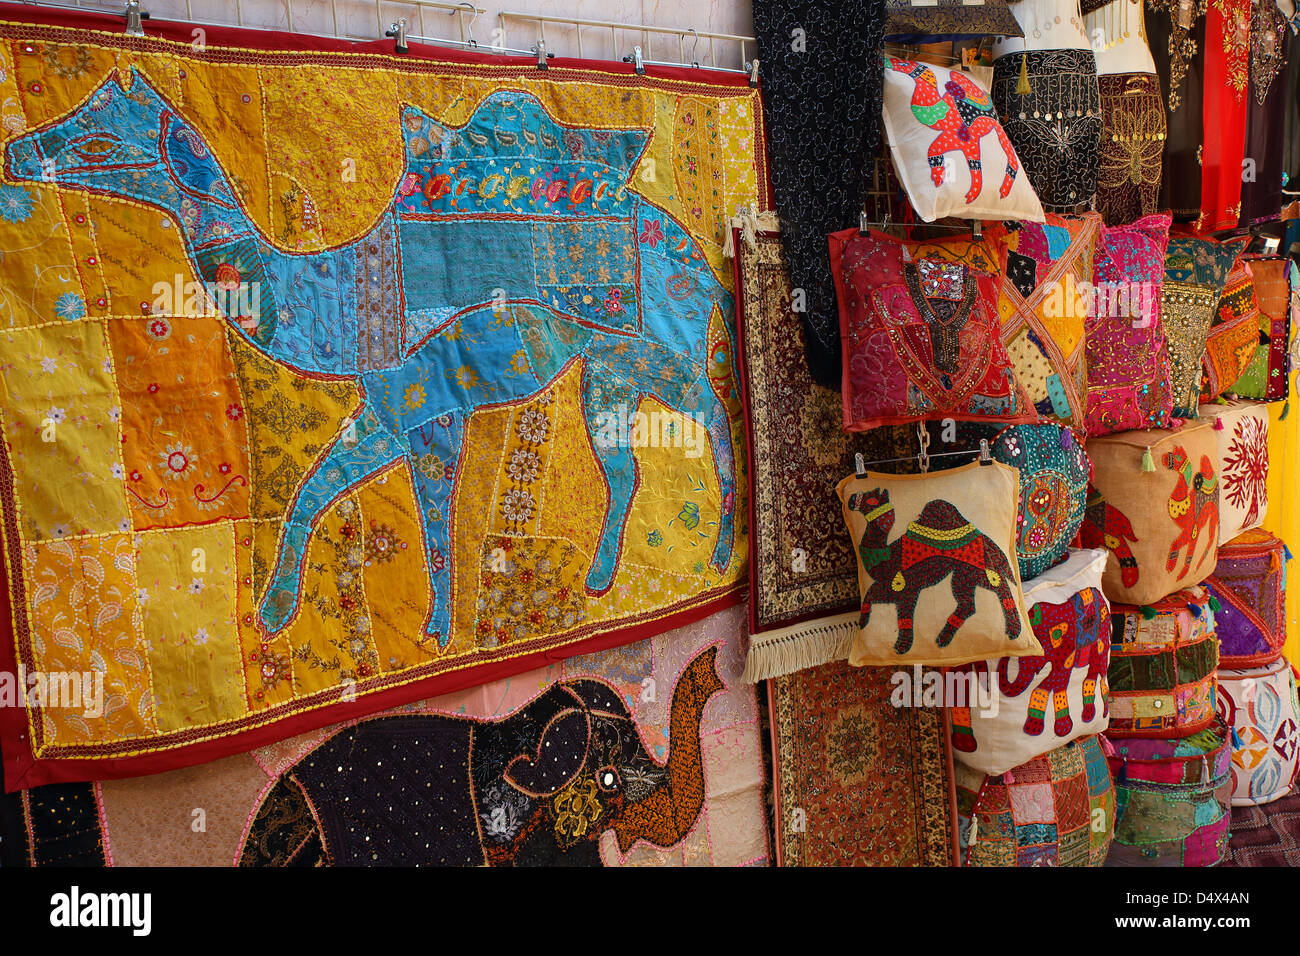 Colorful textiles on display at market in Dubai, United Arab Emirates - Stock Image